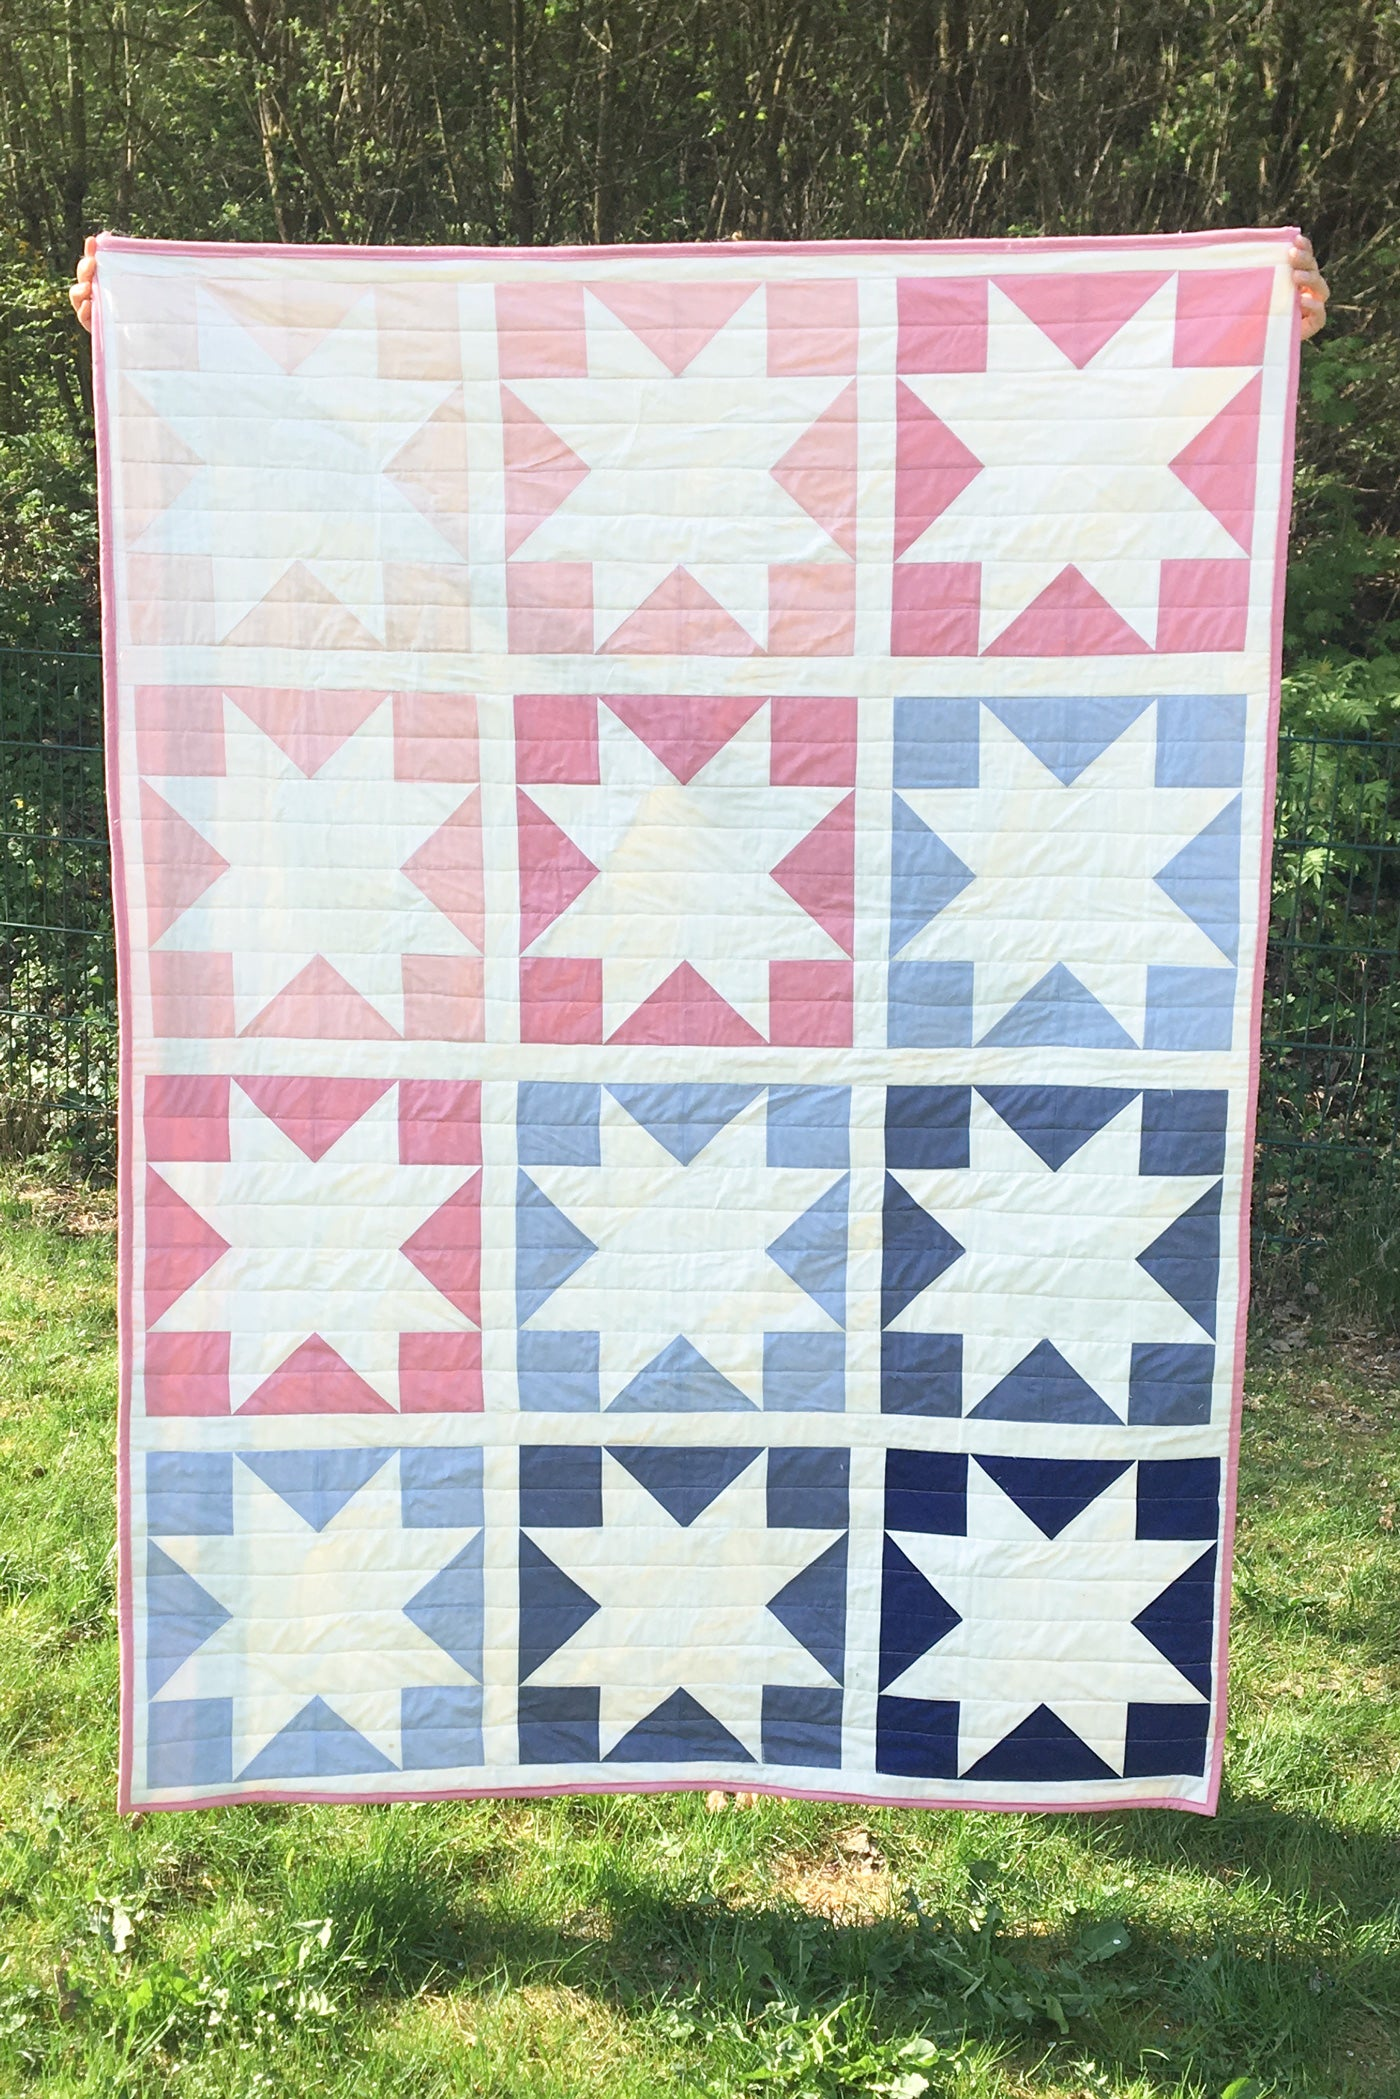 Sawtooth star quilt pattern. Easy quilt pattern for beginners.